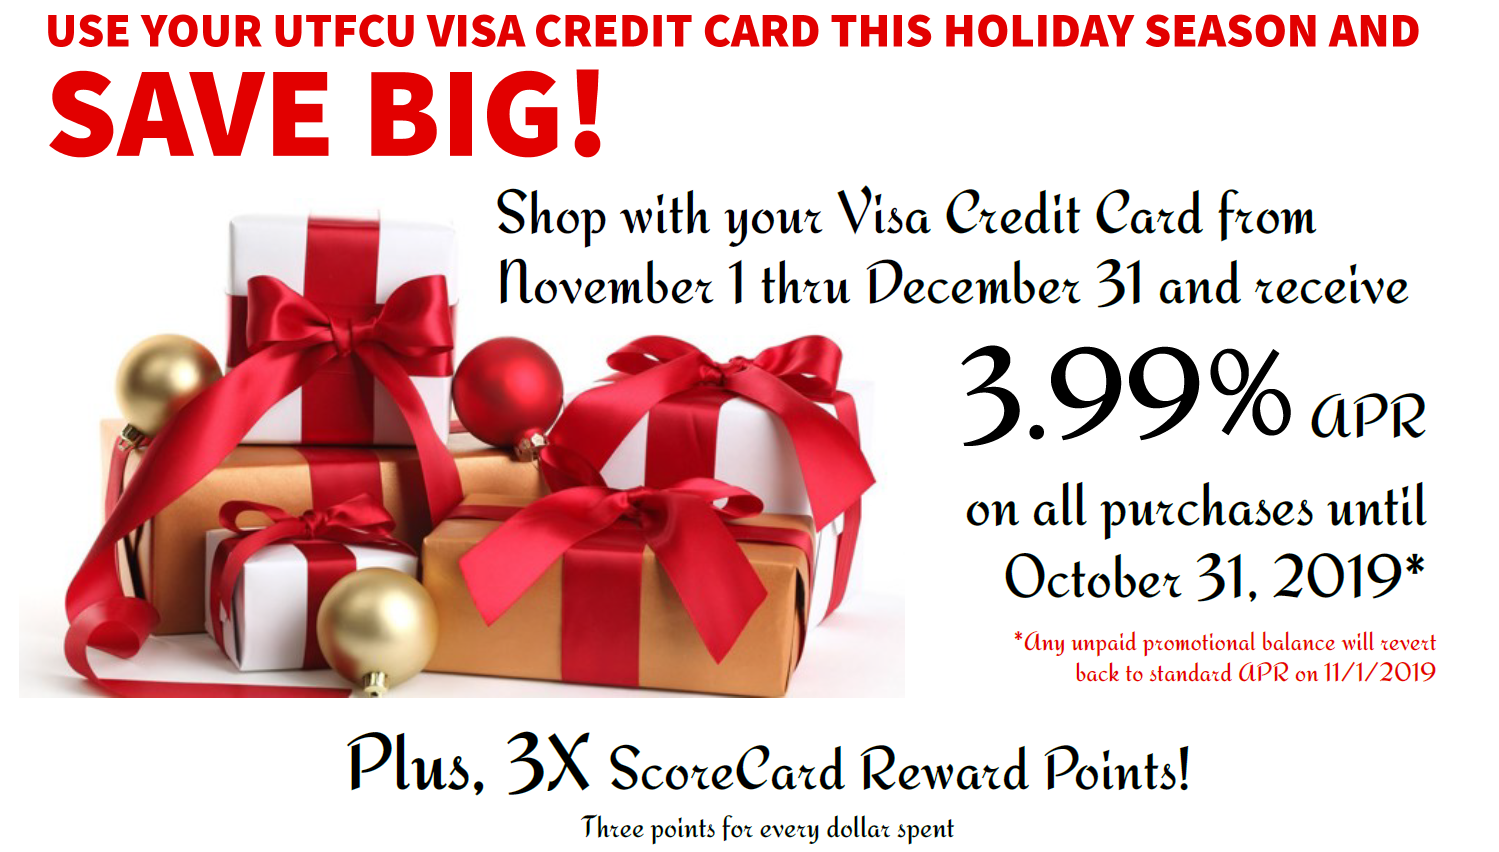 Use your UTFCU visa credit card this holiday season and save big! Shop with your visa credit card from November 1 thru December 31 and 3.99% apr on all purchase until October 31, 2019. Any unpaid promotional balance will revert back to standard apr on 11/1/2019 plus, 3x scorecard reward points! Three points for every dollar spent.